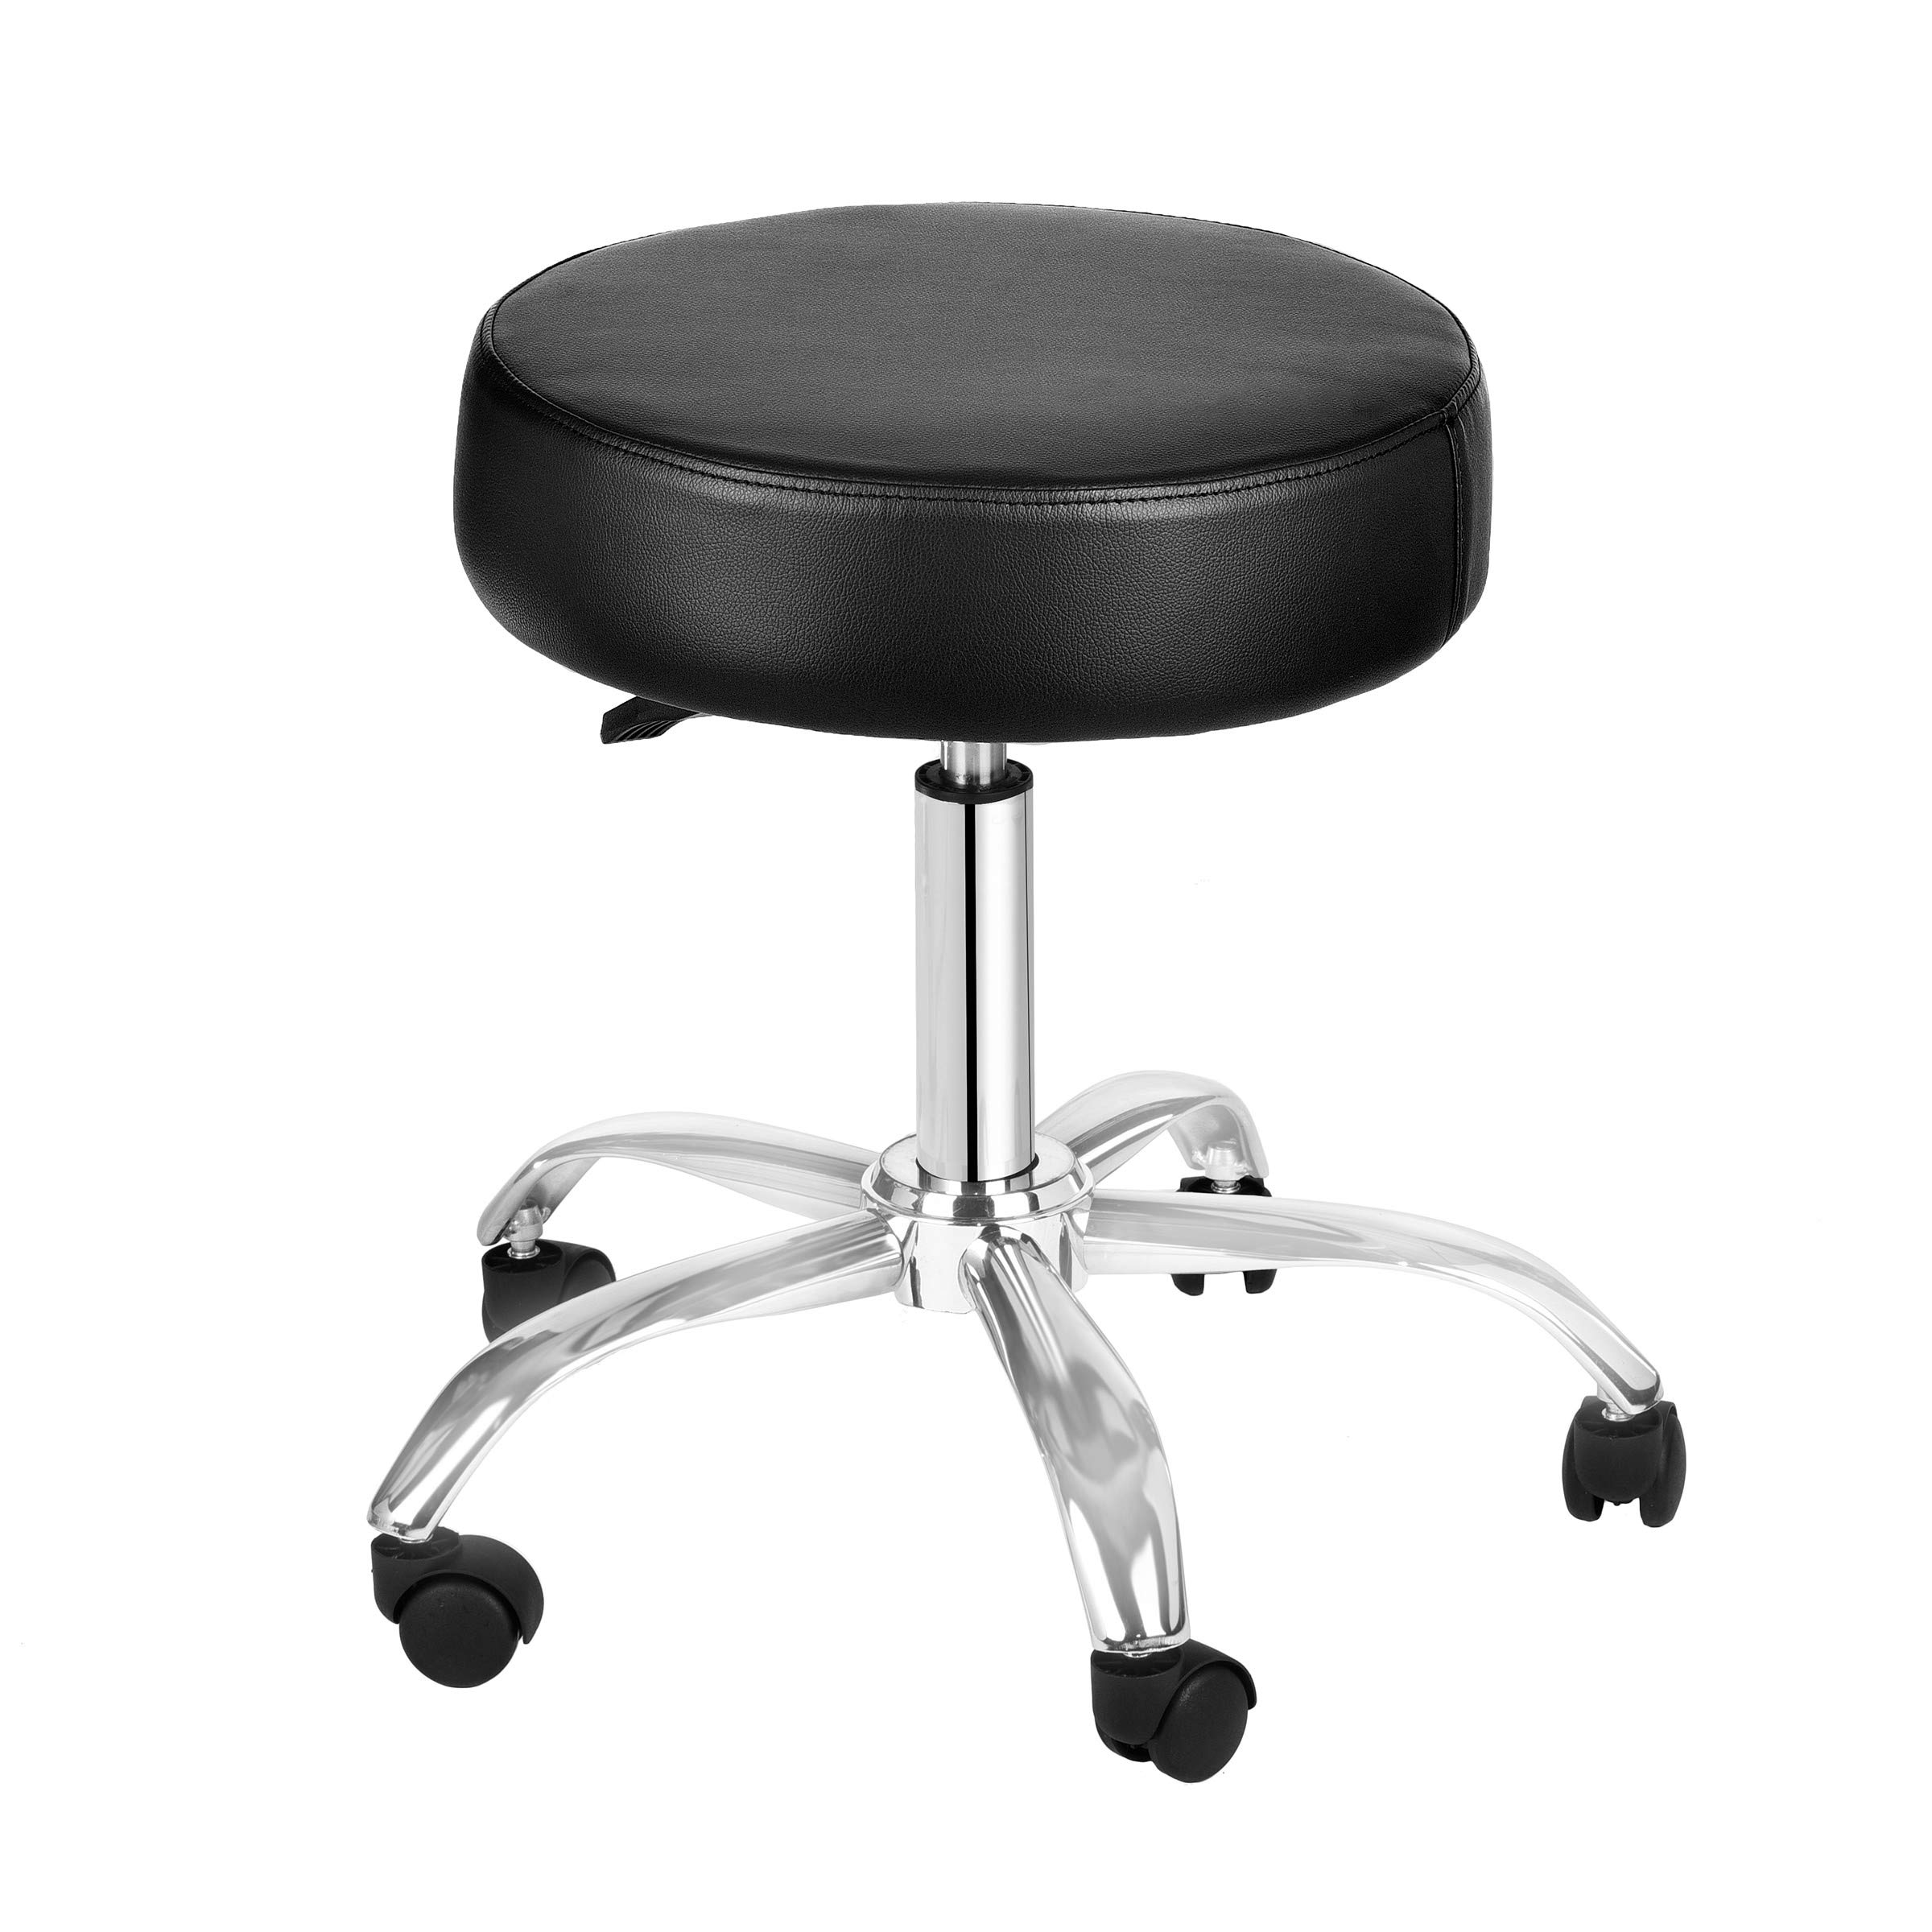 AdirMed Lux Height-Adjustment Stool - Pneumatic Rolling Swivel Stool - Versatile Mobility & Elevation for Spa Salon Home & Office Use (Black) by AdirMed